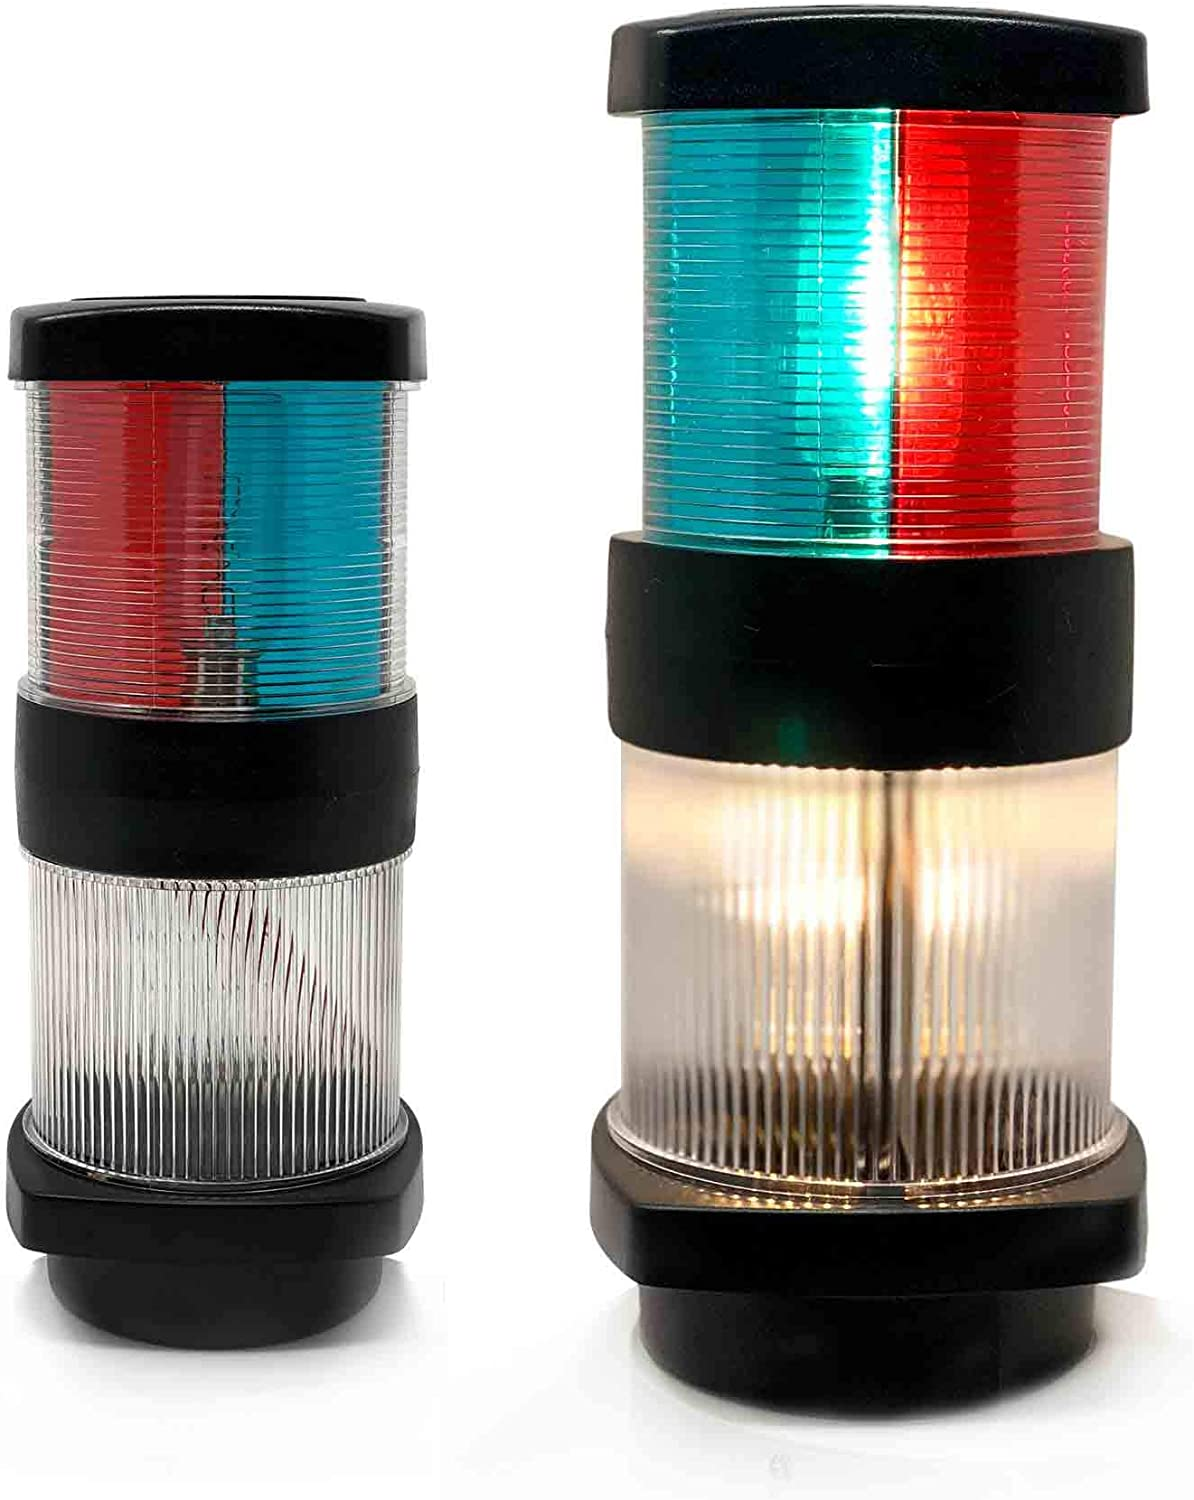 Five Oceans Masthead Tri-Color Anchor All Round Navigation Boat Light